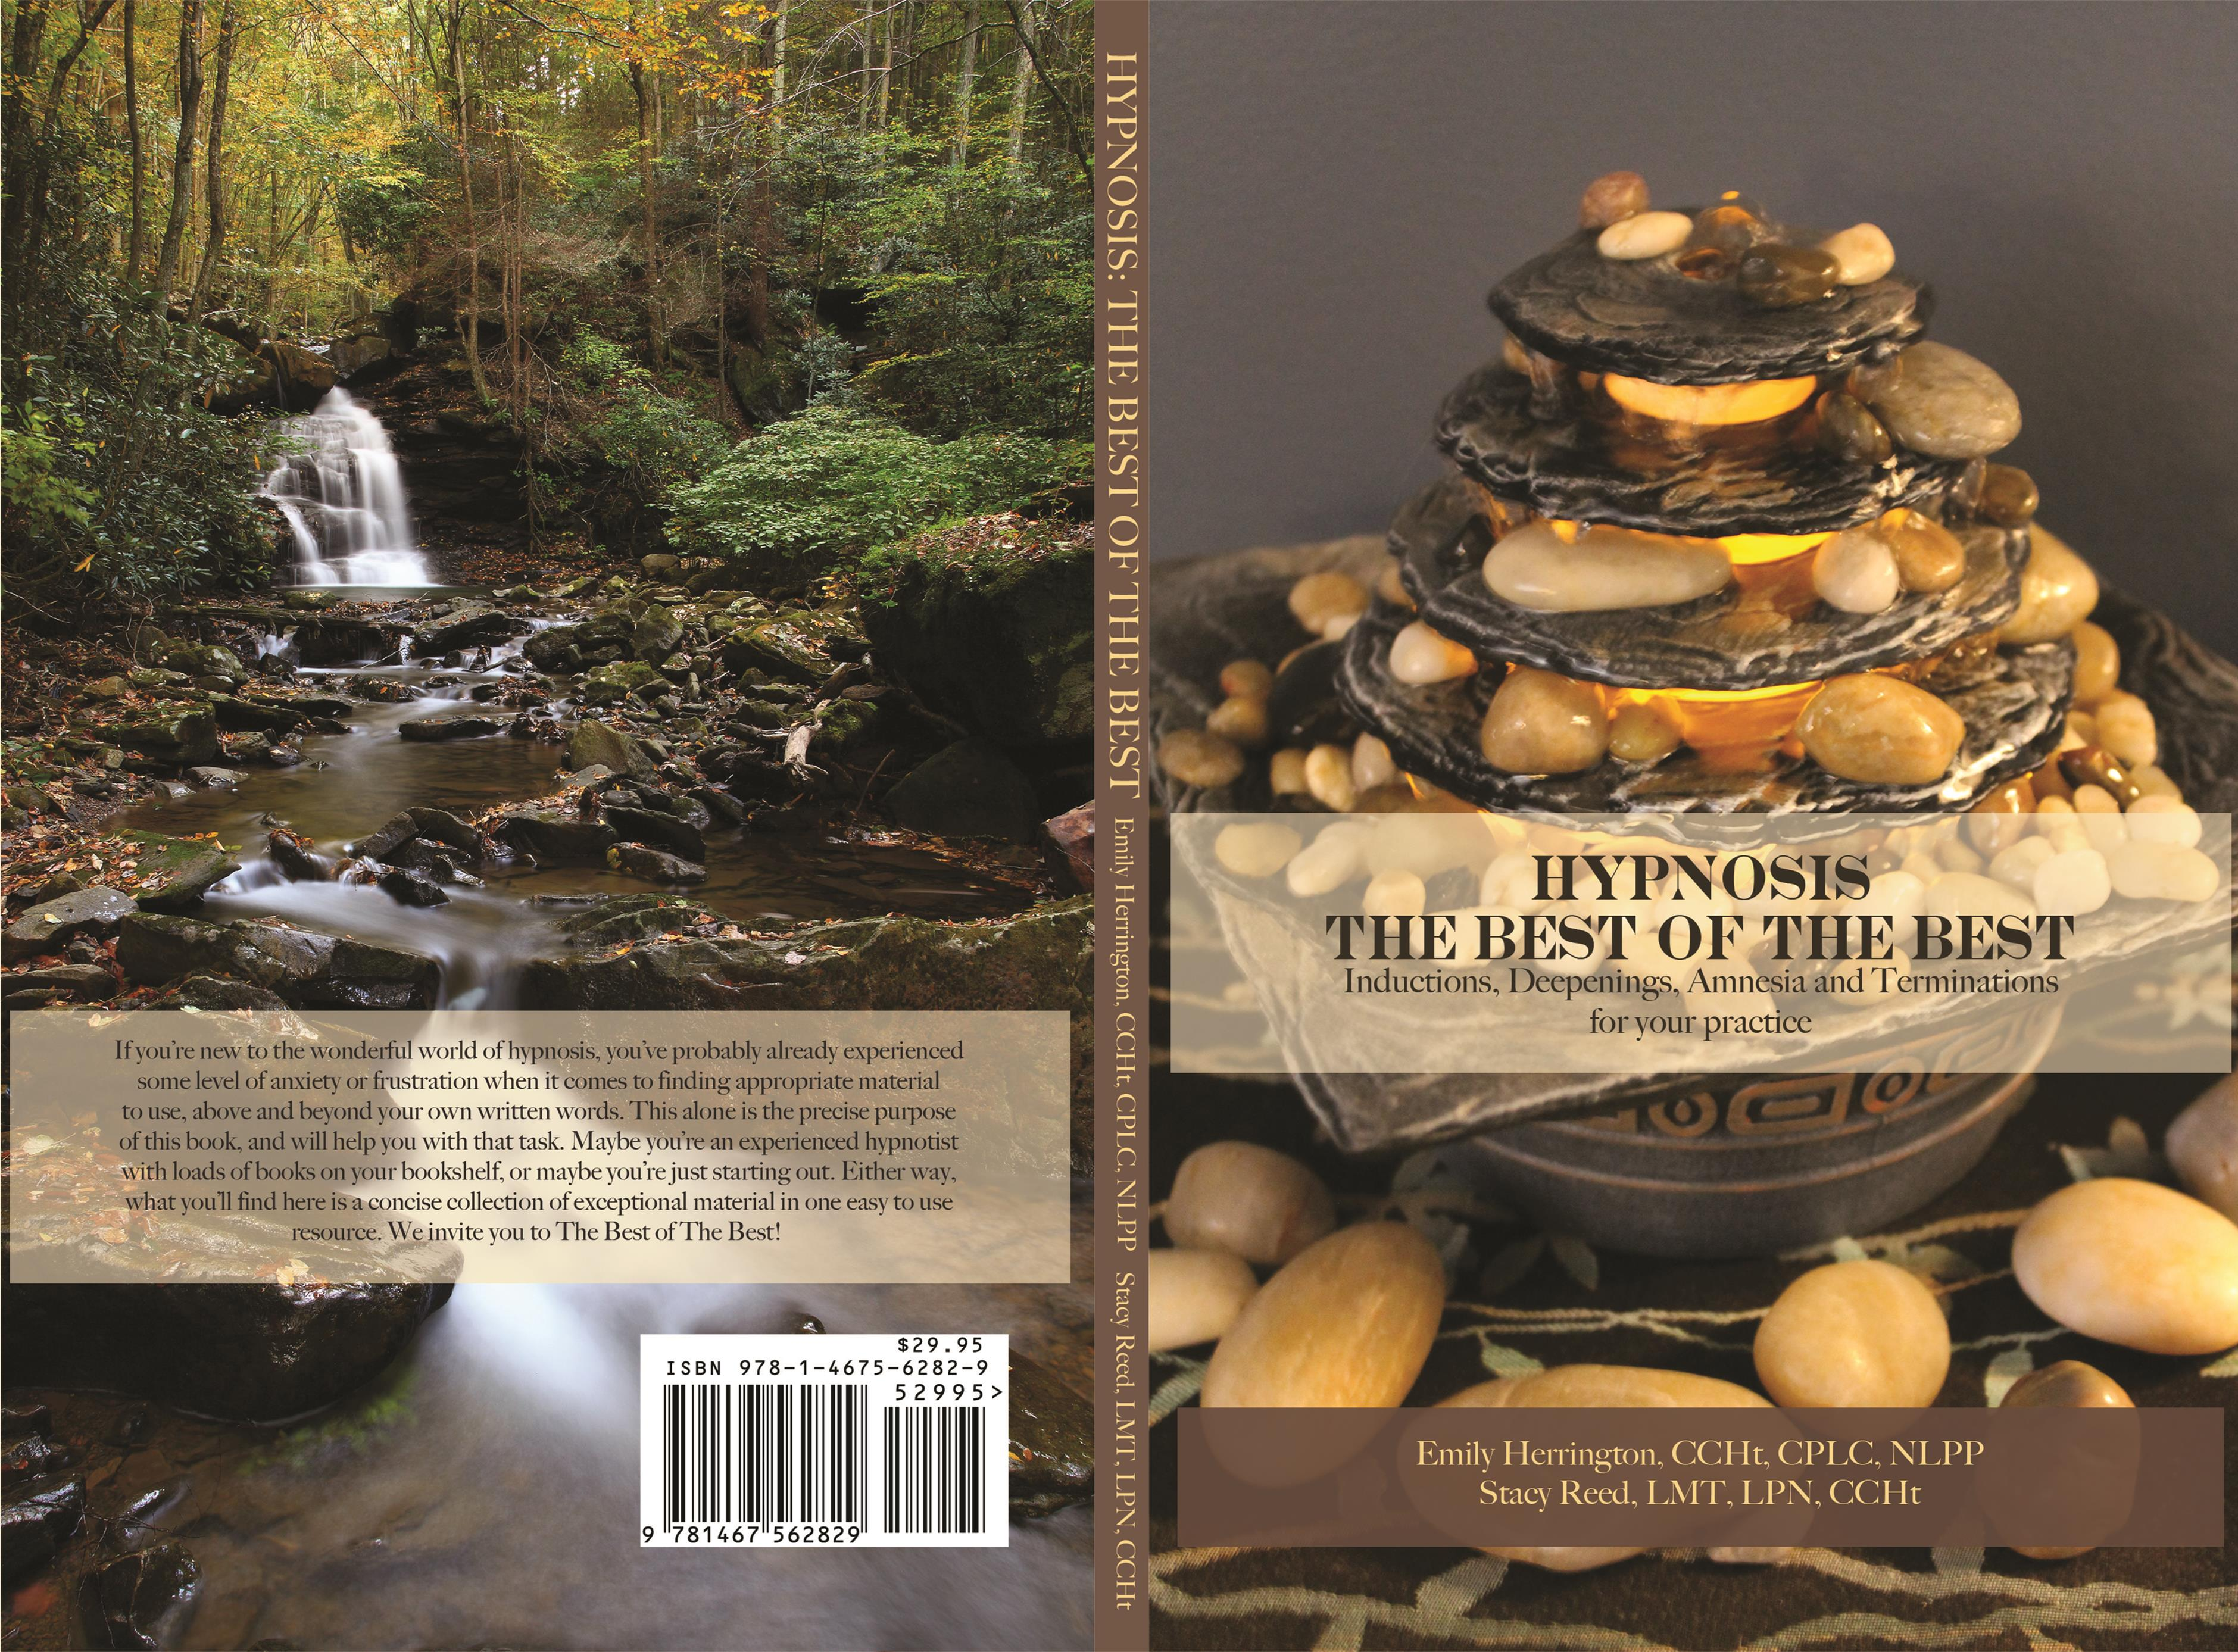 Hypnosis The Best of The Best cover image